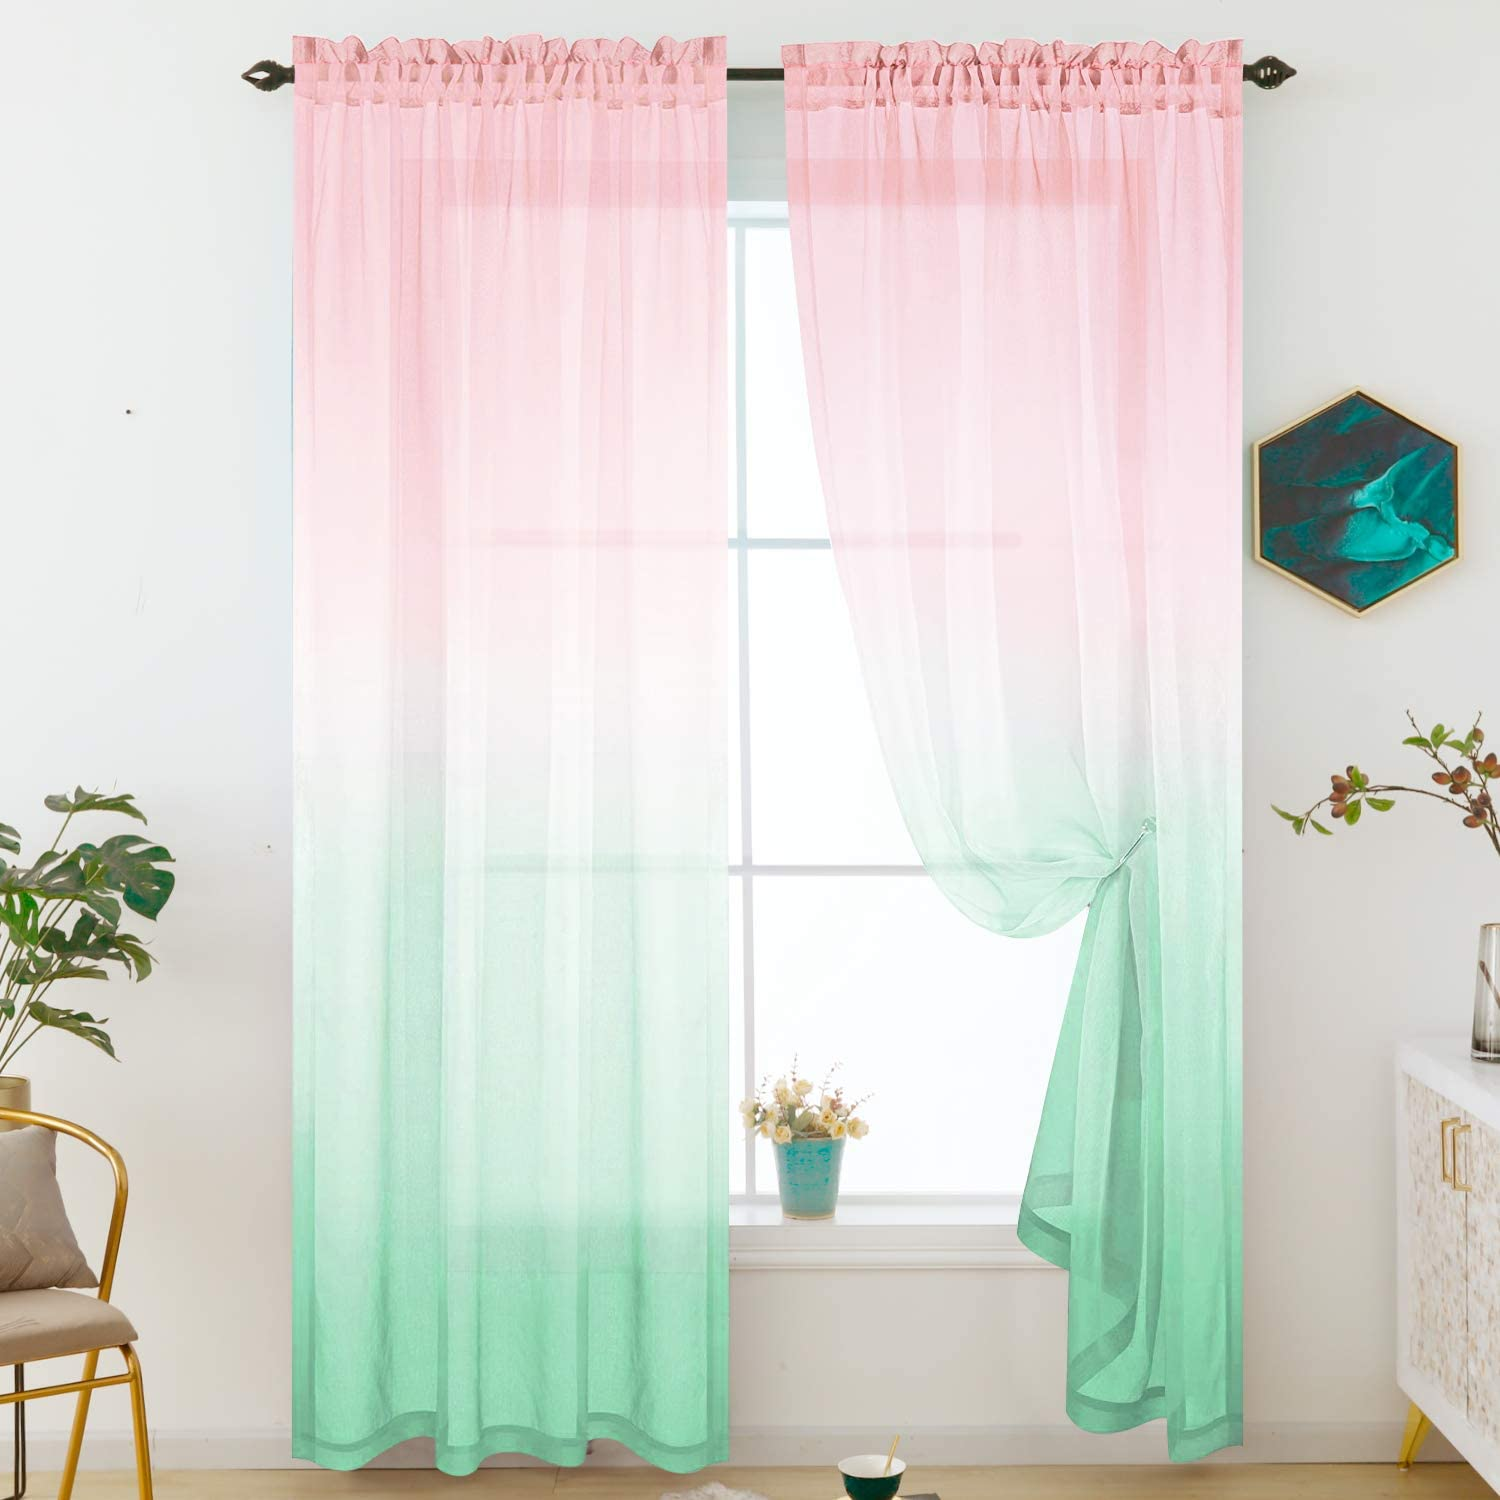 Girls Room Sheer Curtains for Girls Bedroom Decor Pink and Green